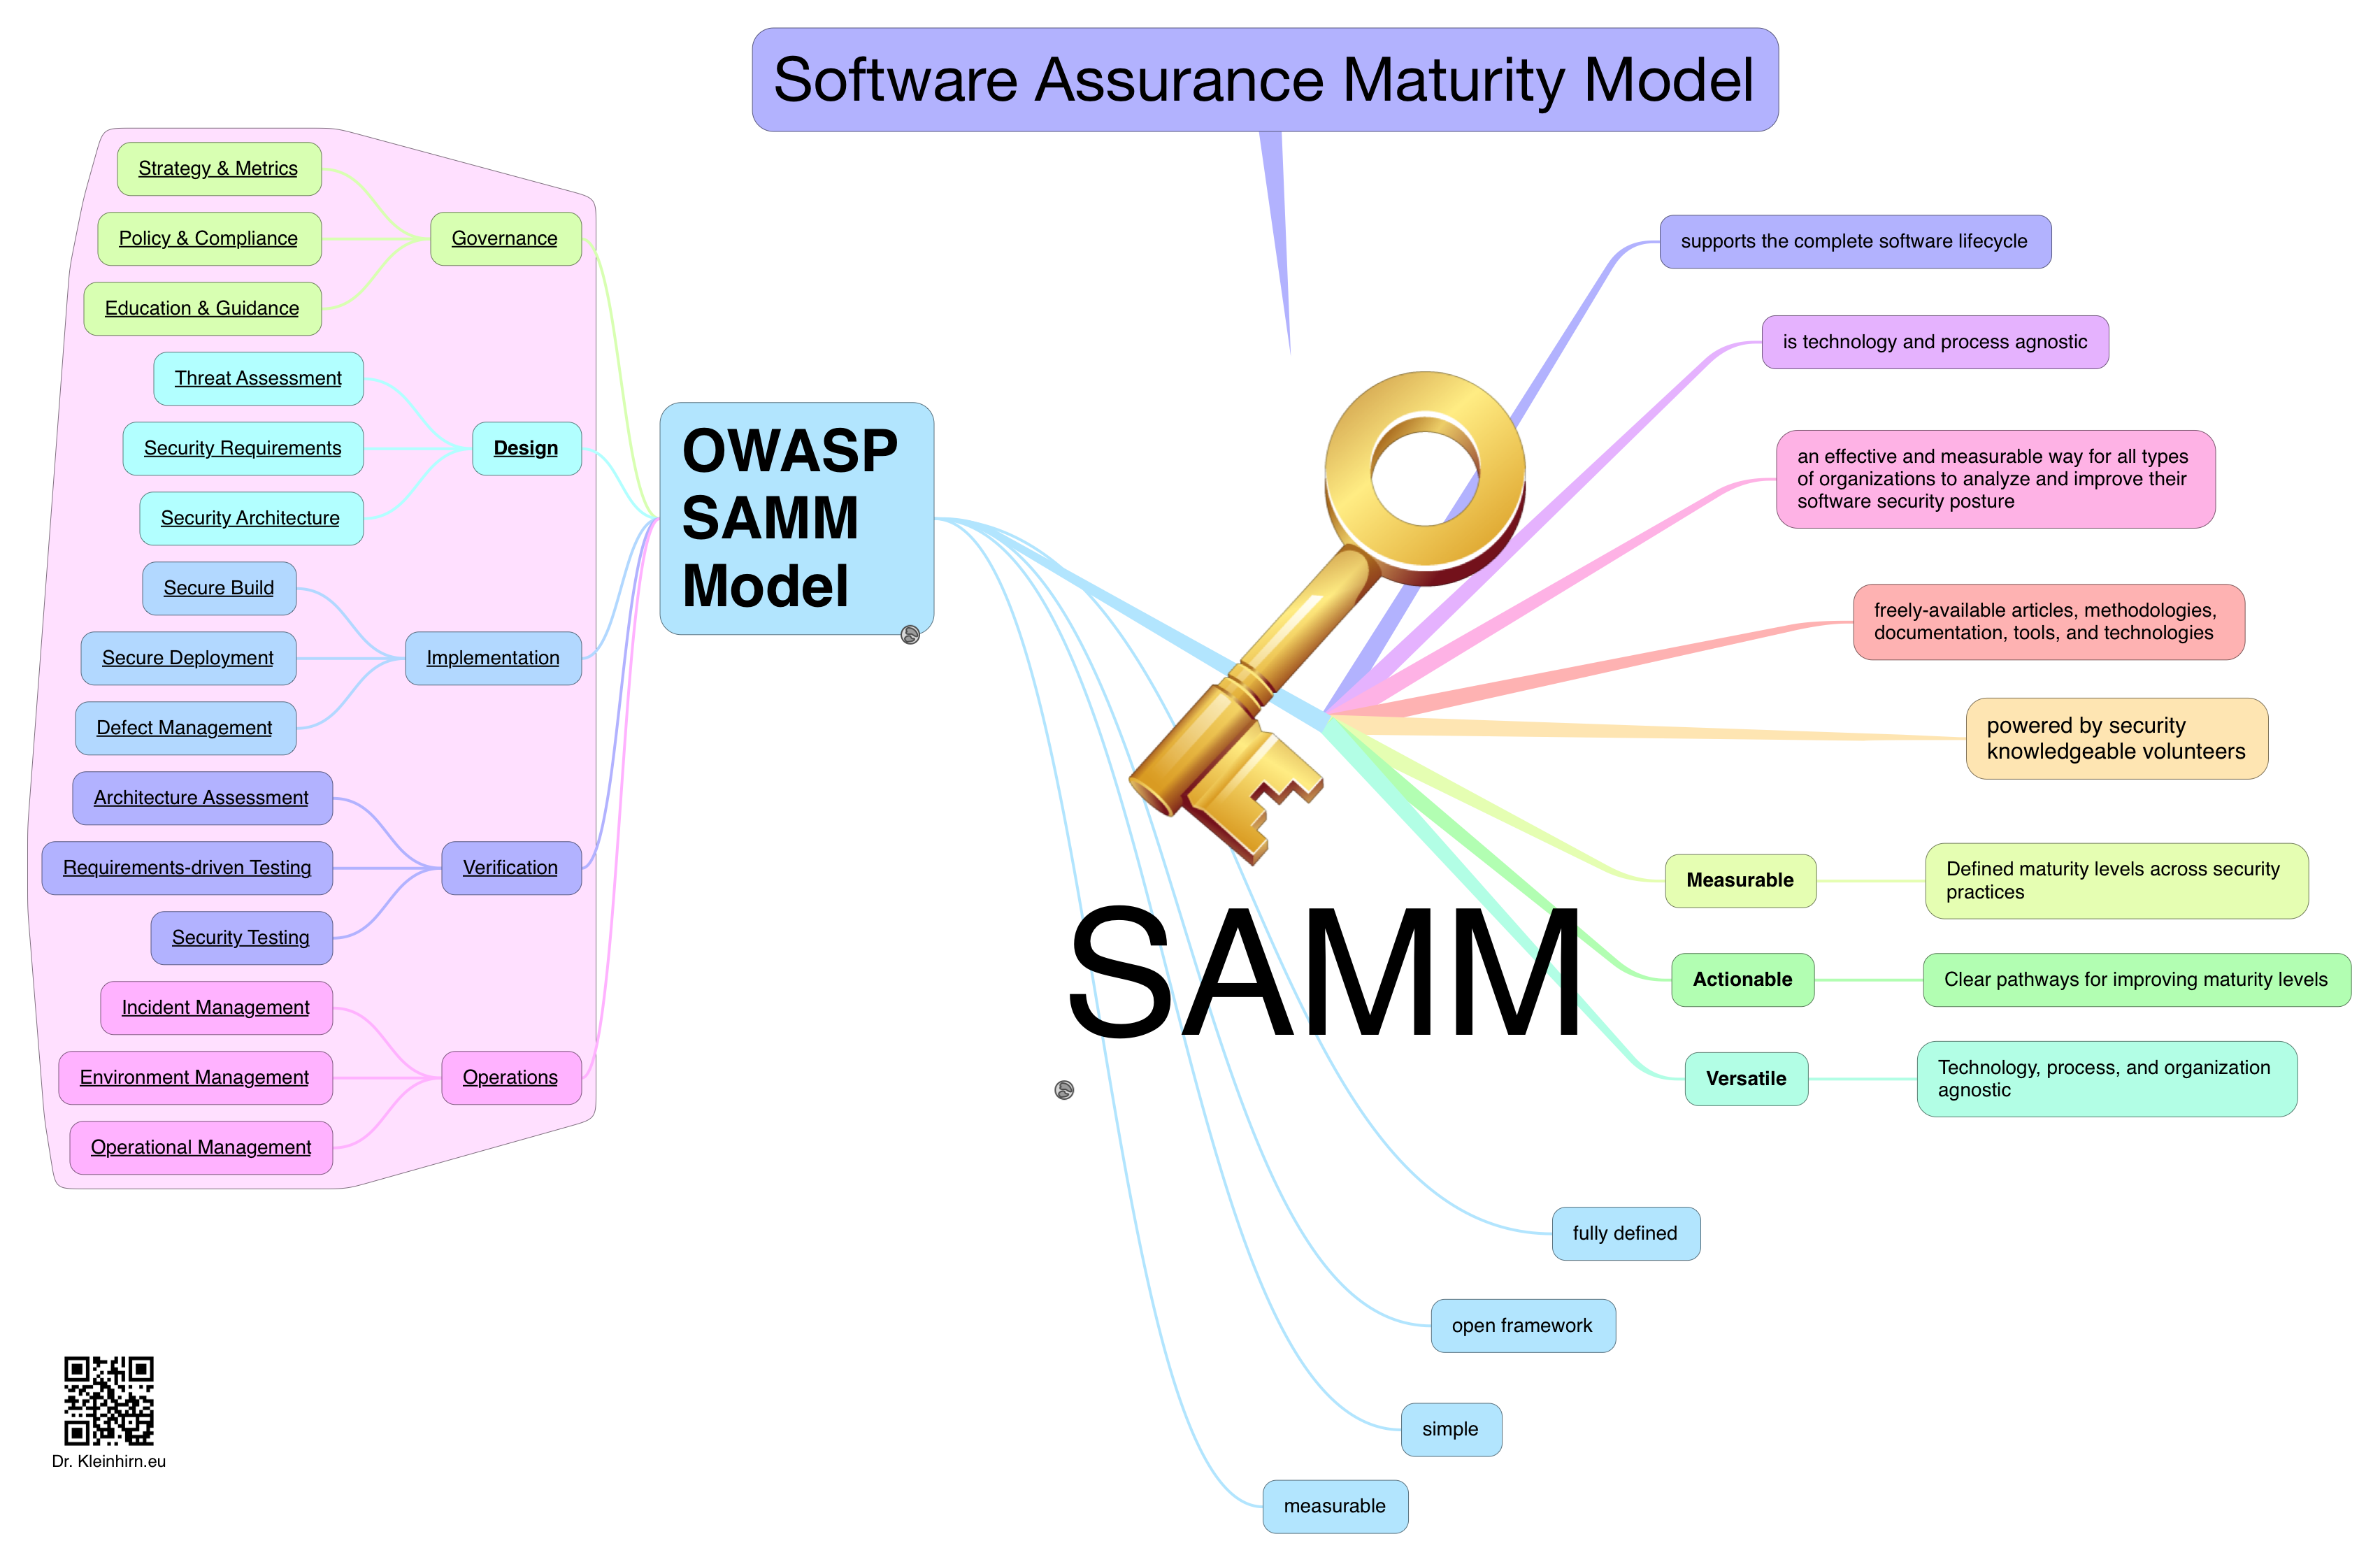 Software Assurance Maturity Model